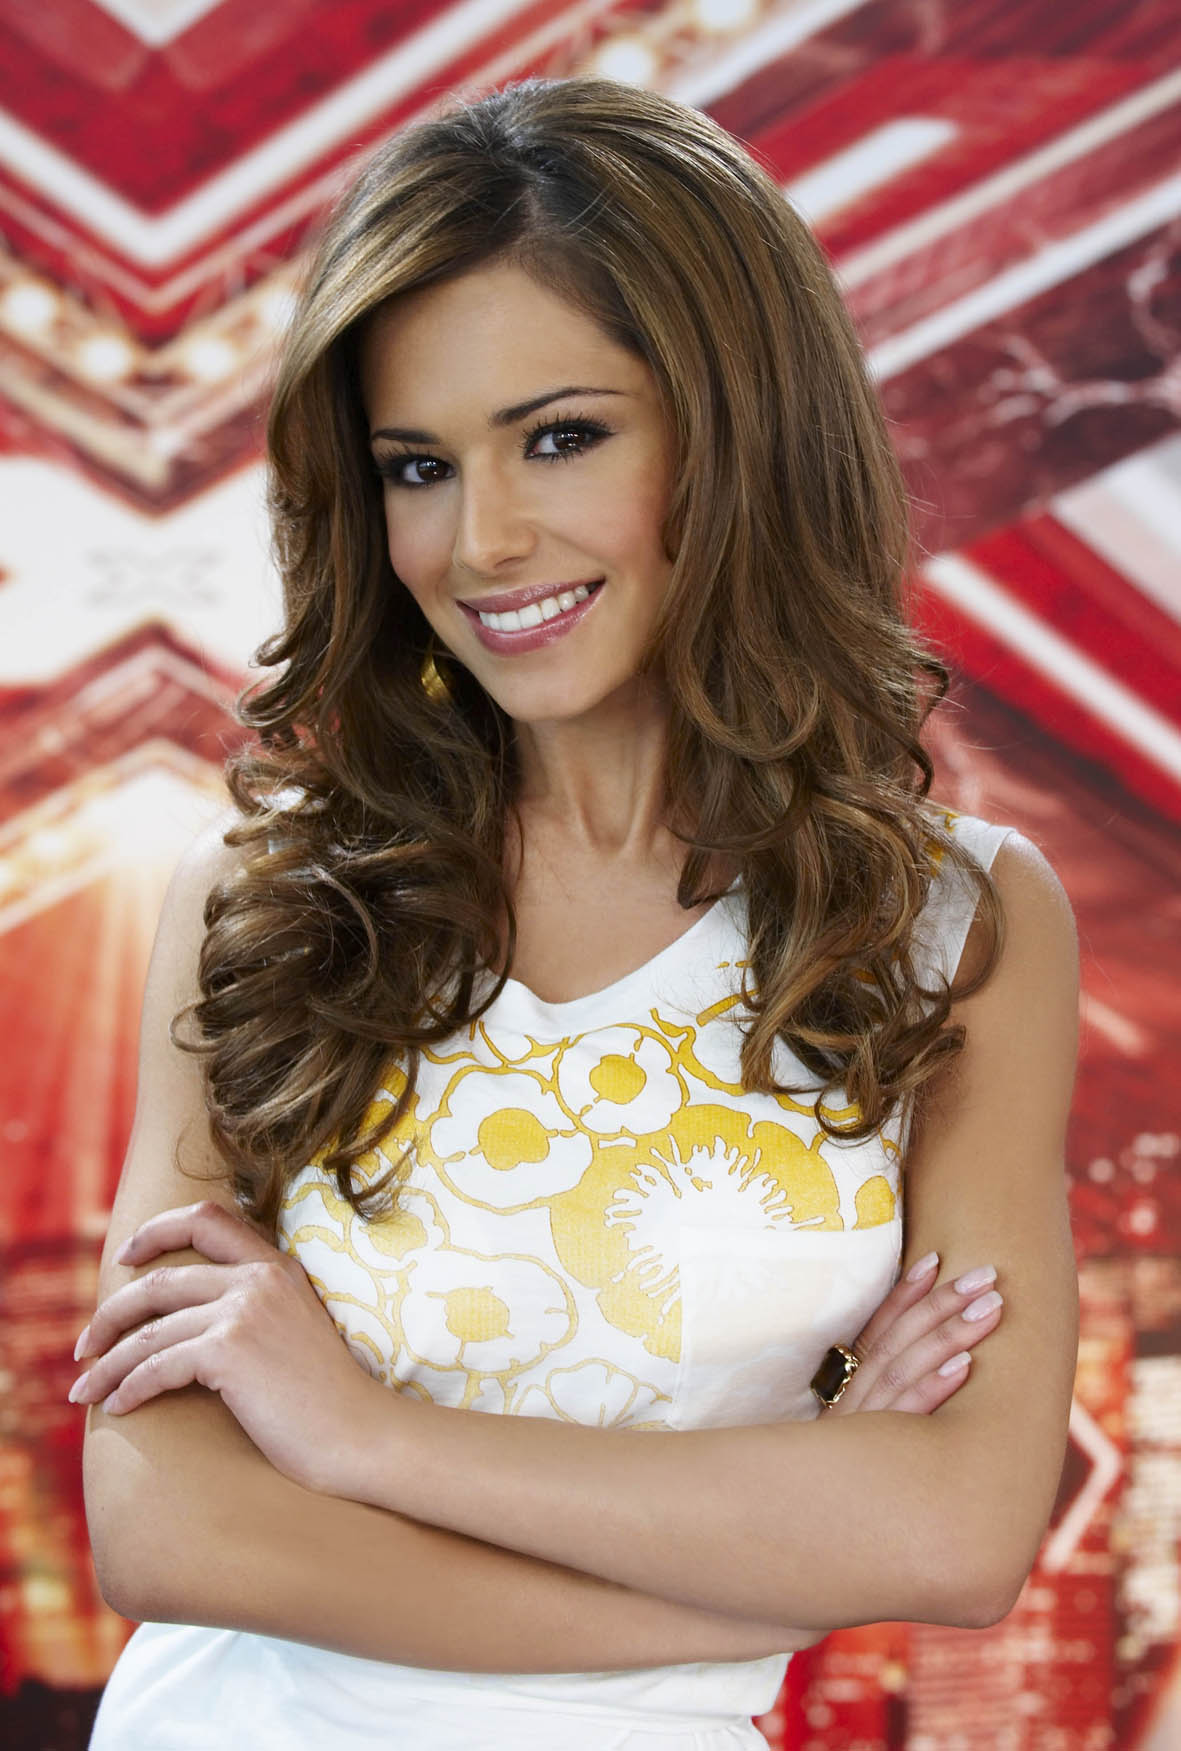 A TALKBACK THAMES PRODUCTION FOR ITV<br /><br />THIS IMAGE IS STRICTLY EMBARGOED UNTIL 00.01 ON TUESDAY 12 AUGUST 2008<br /><br />Series 5 of The X Factor kicks off with a new judging line-up with CHERYL COLE joining SIMON COWELL, LOUIS WALSH and DANNII MINOGUE as the fo